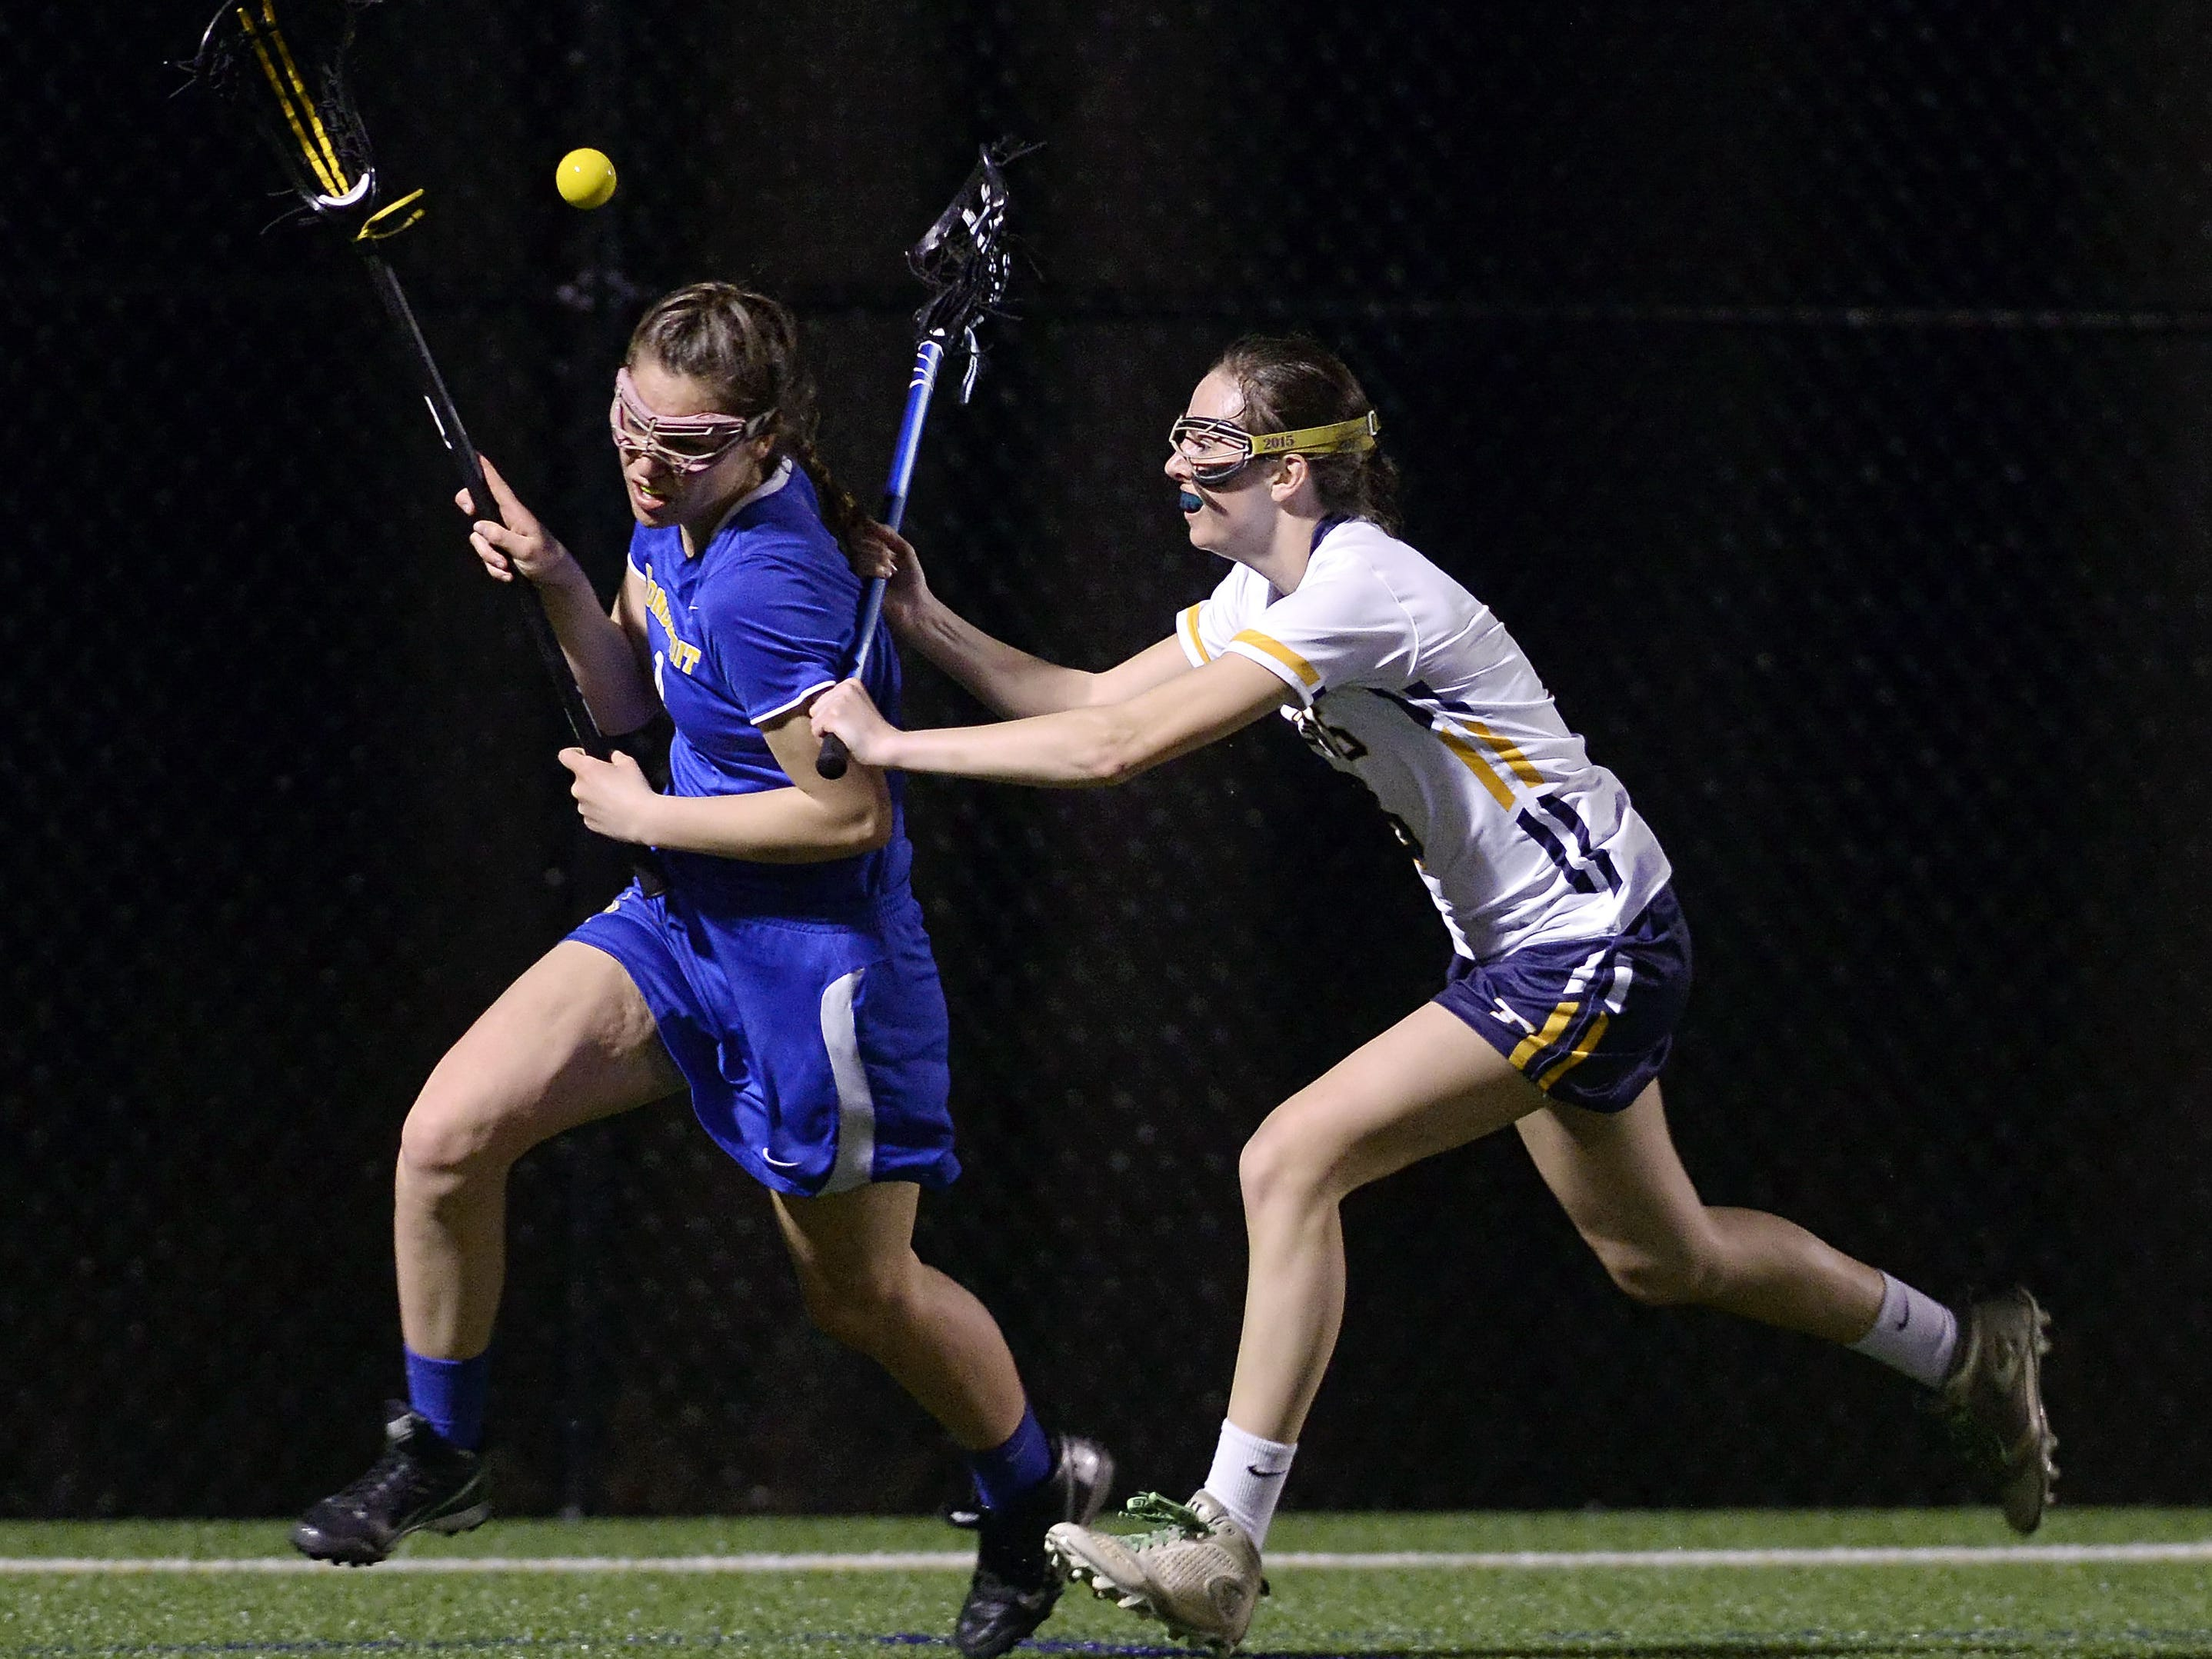 Webster Thomas' Marley Morrill, right, knocks the ball away from Irondequoit's Mary Clare Bowes.